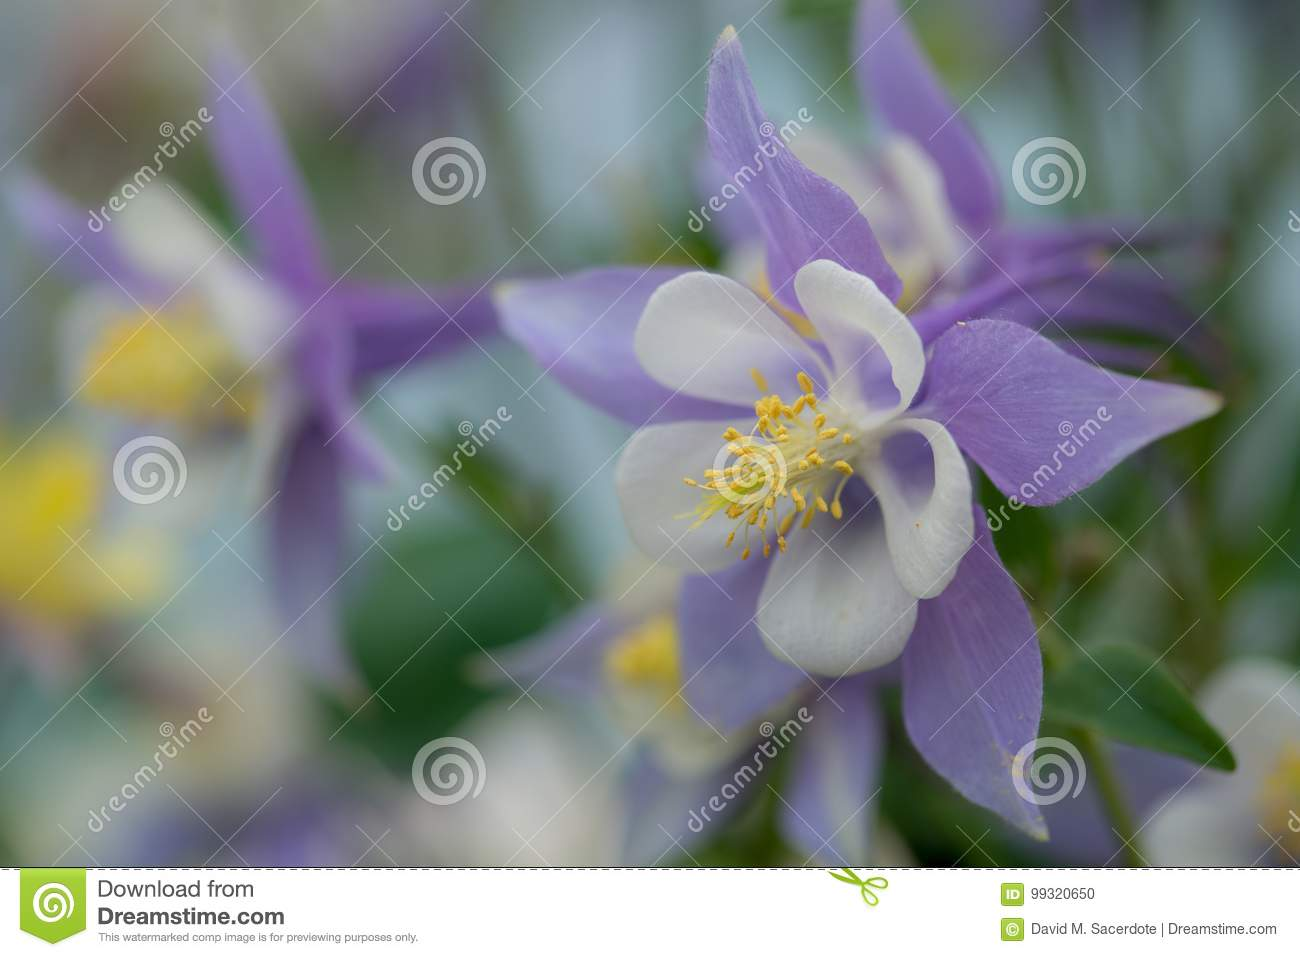 Purple and white columbine flower stock photo image of garden royalty free stock photo izmirmasajfo